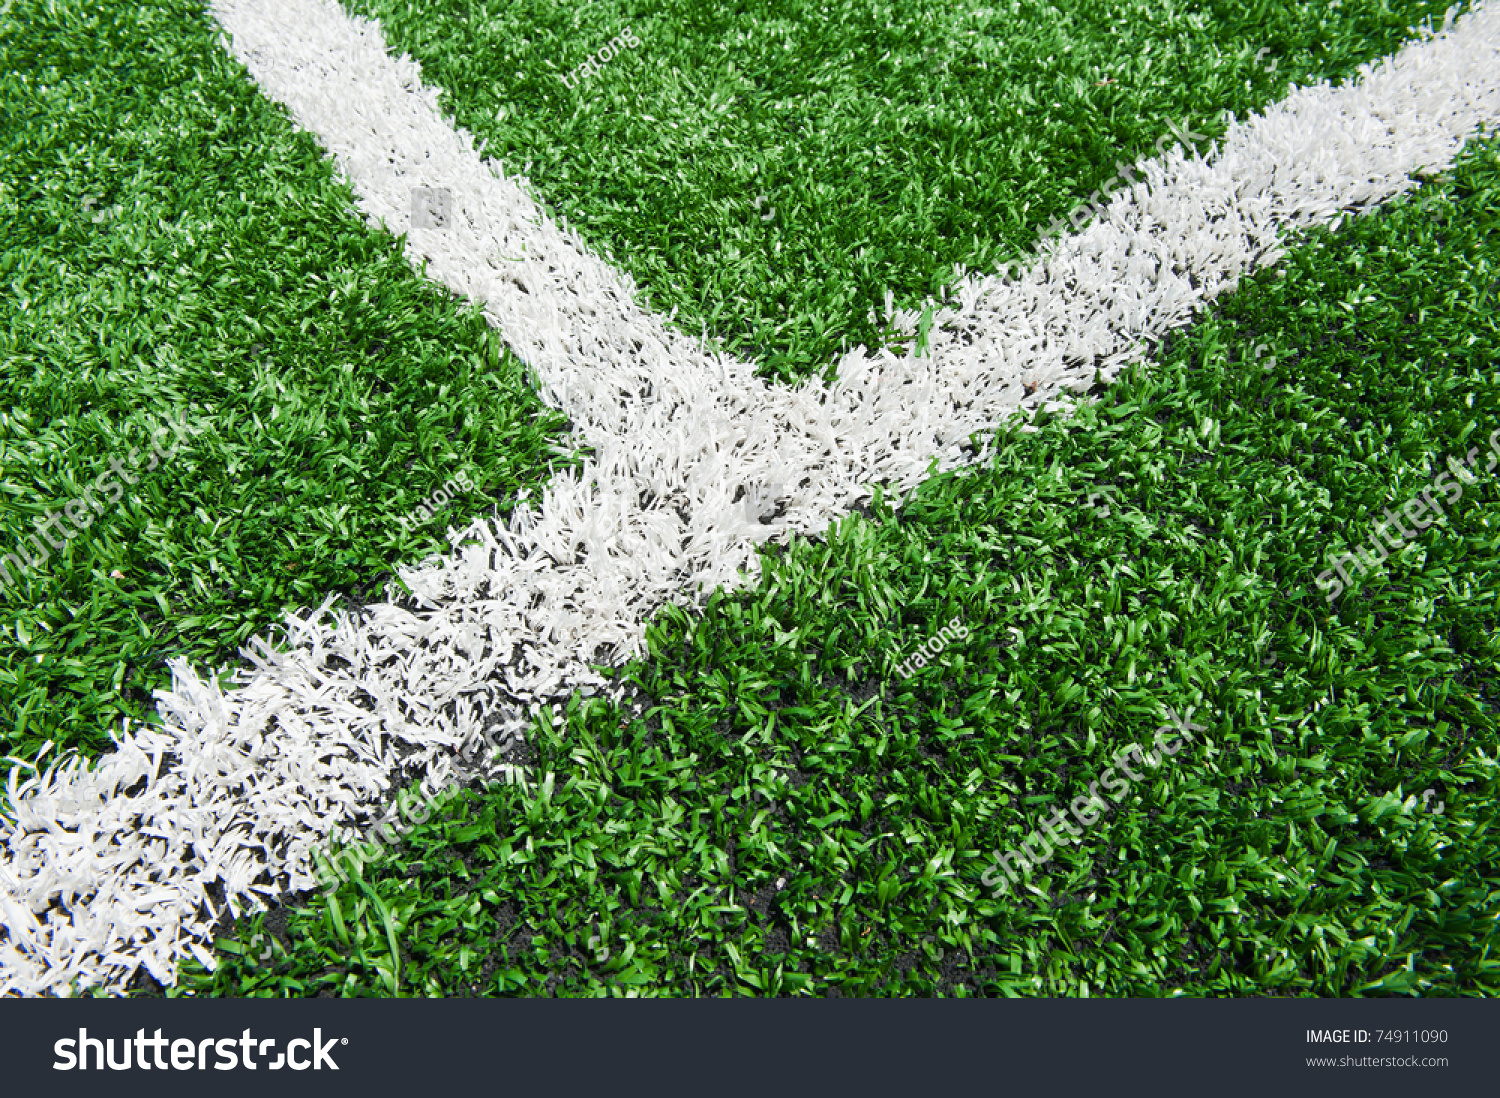 Intersecting Lines On A Field Of Play. Stock Photo ...